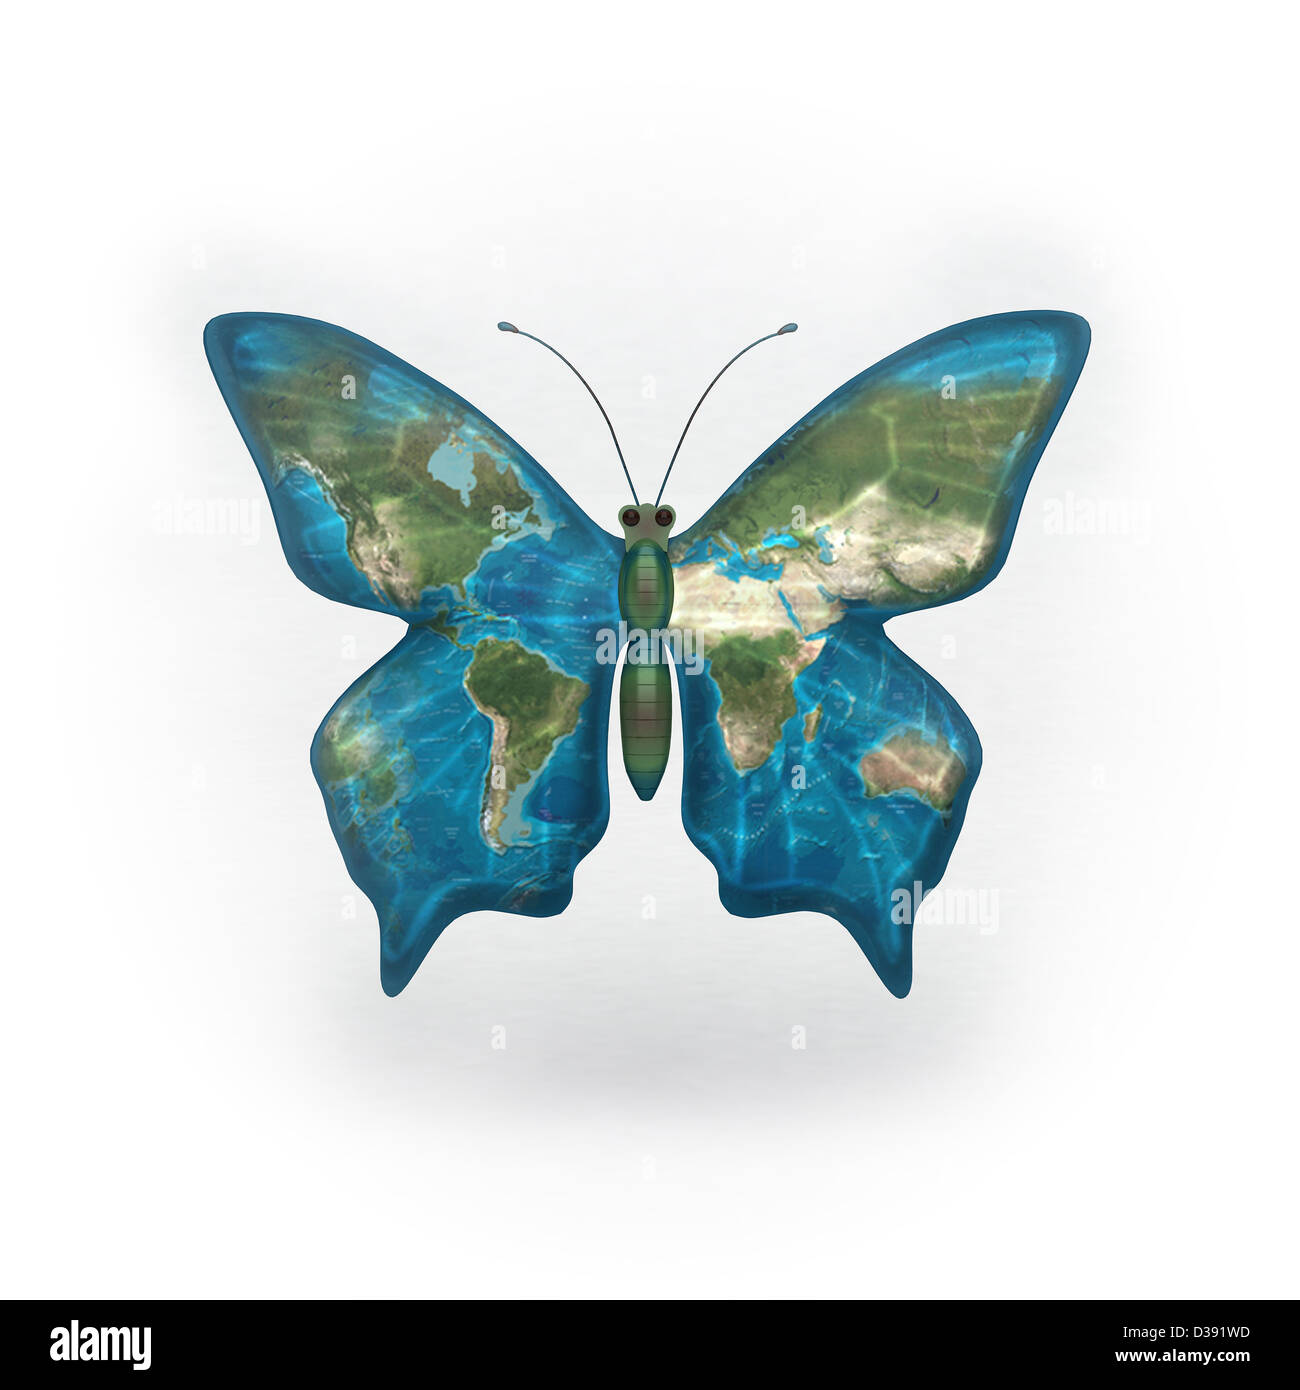 Butterfly With World Map On Its Wings Stock Photo 53674137 Alamy